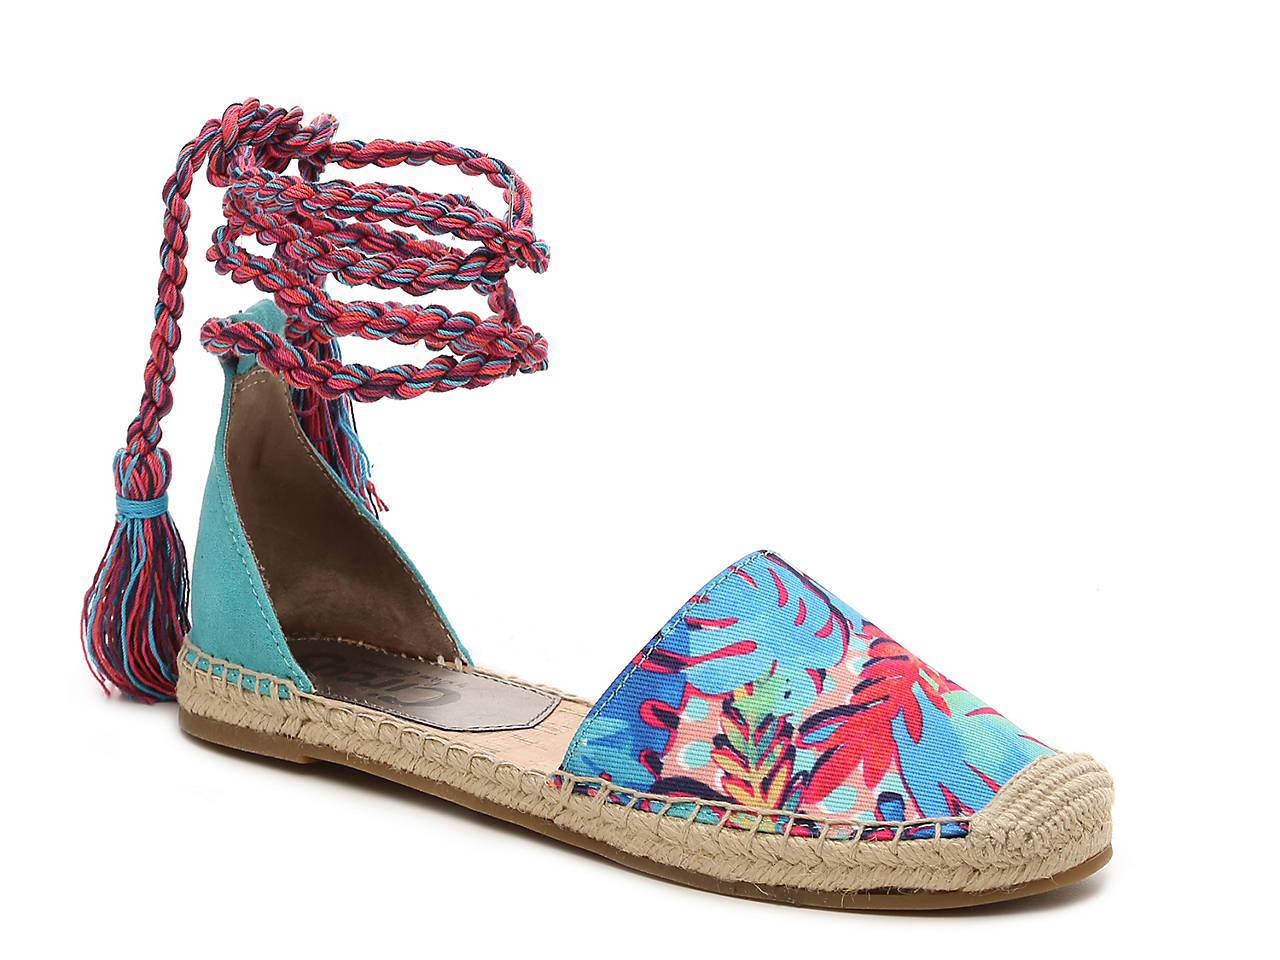 285fe7403 Circus by Sam Edelman Lenora Flat Women s Shoes